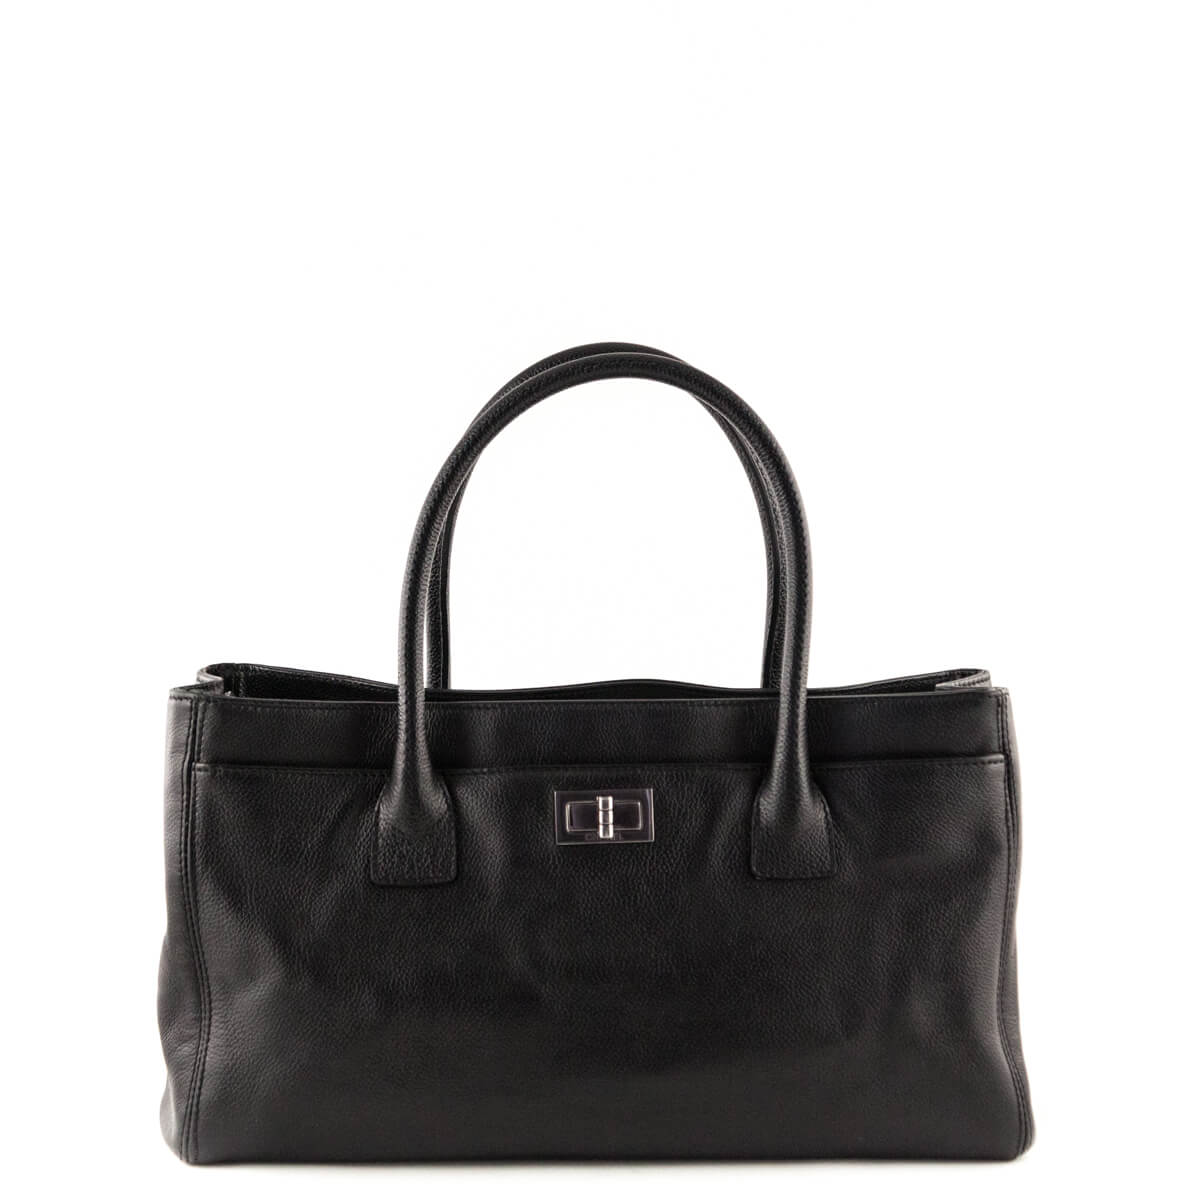 4f196938165d Chanel Black Cerf E W Reissue Tote Bag - LOVE that BAG - Preowned Authentic  ...